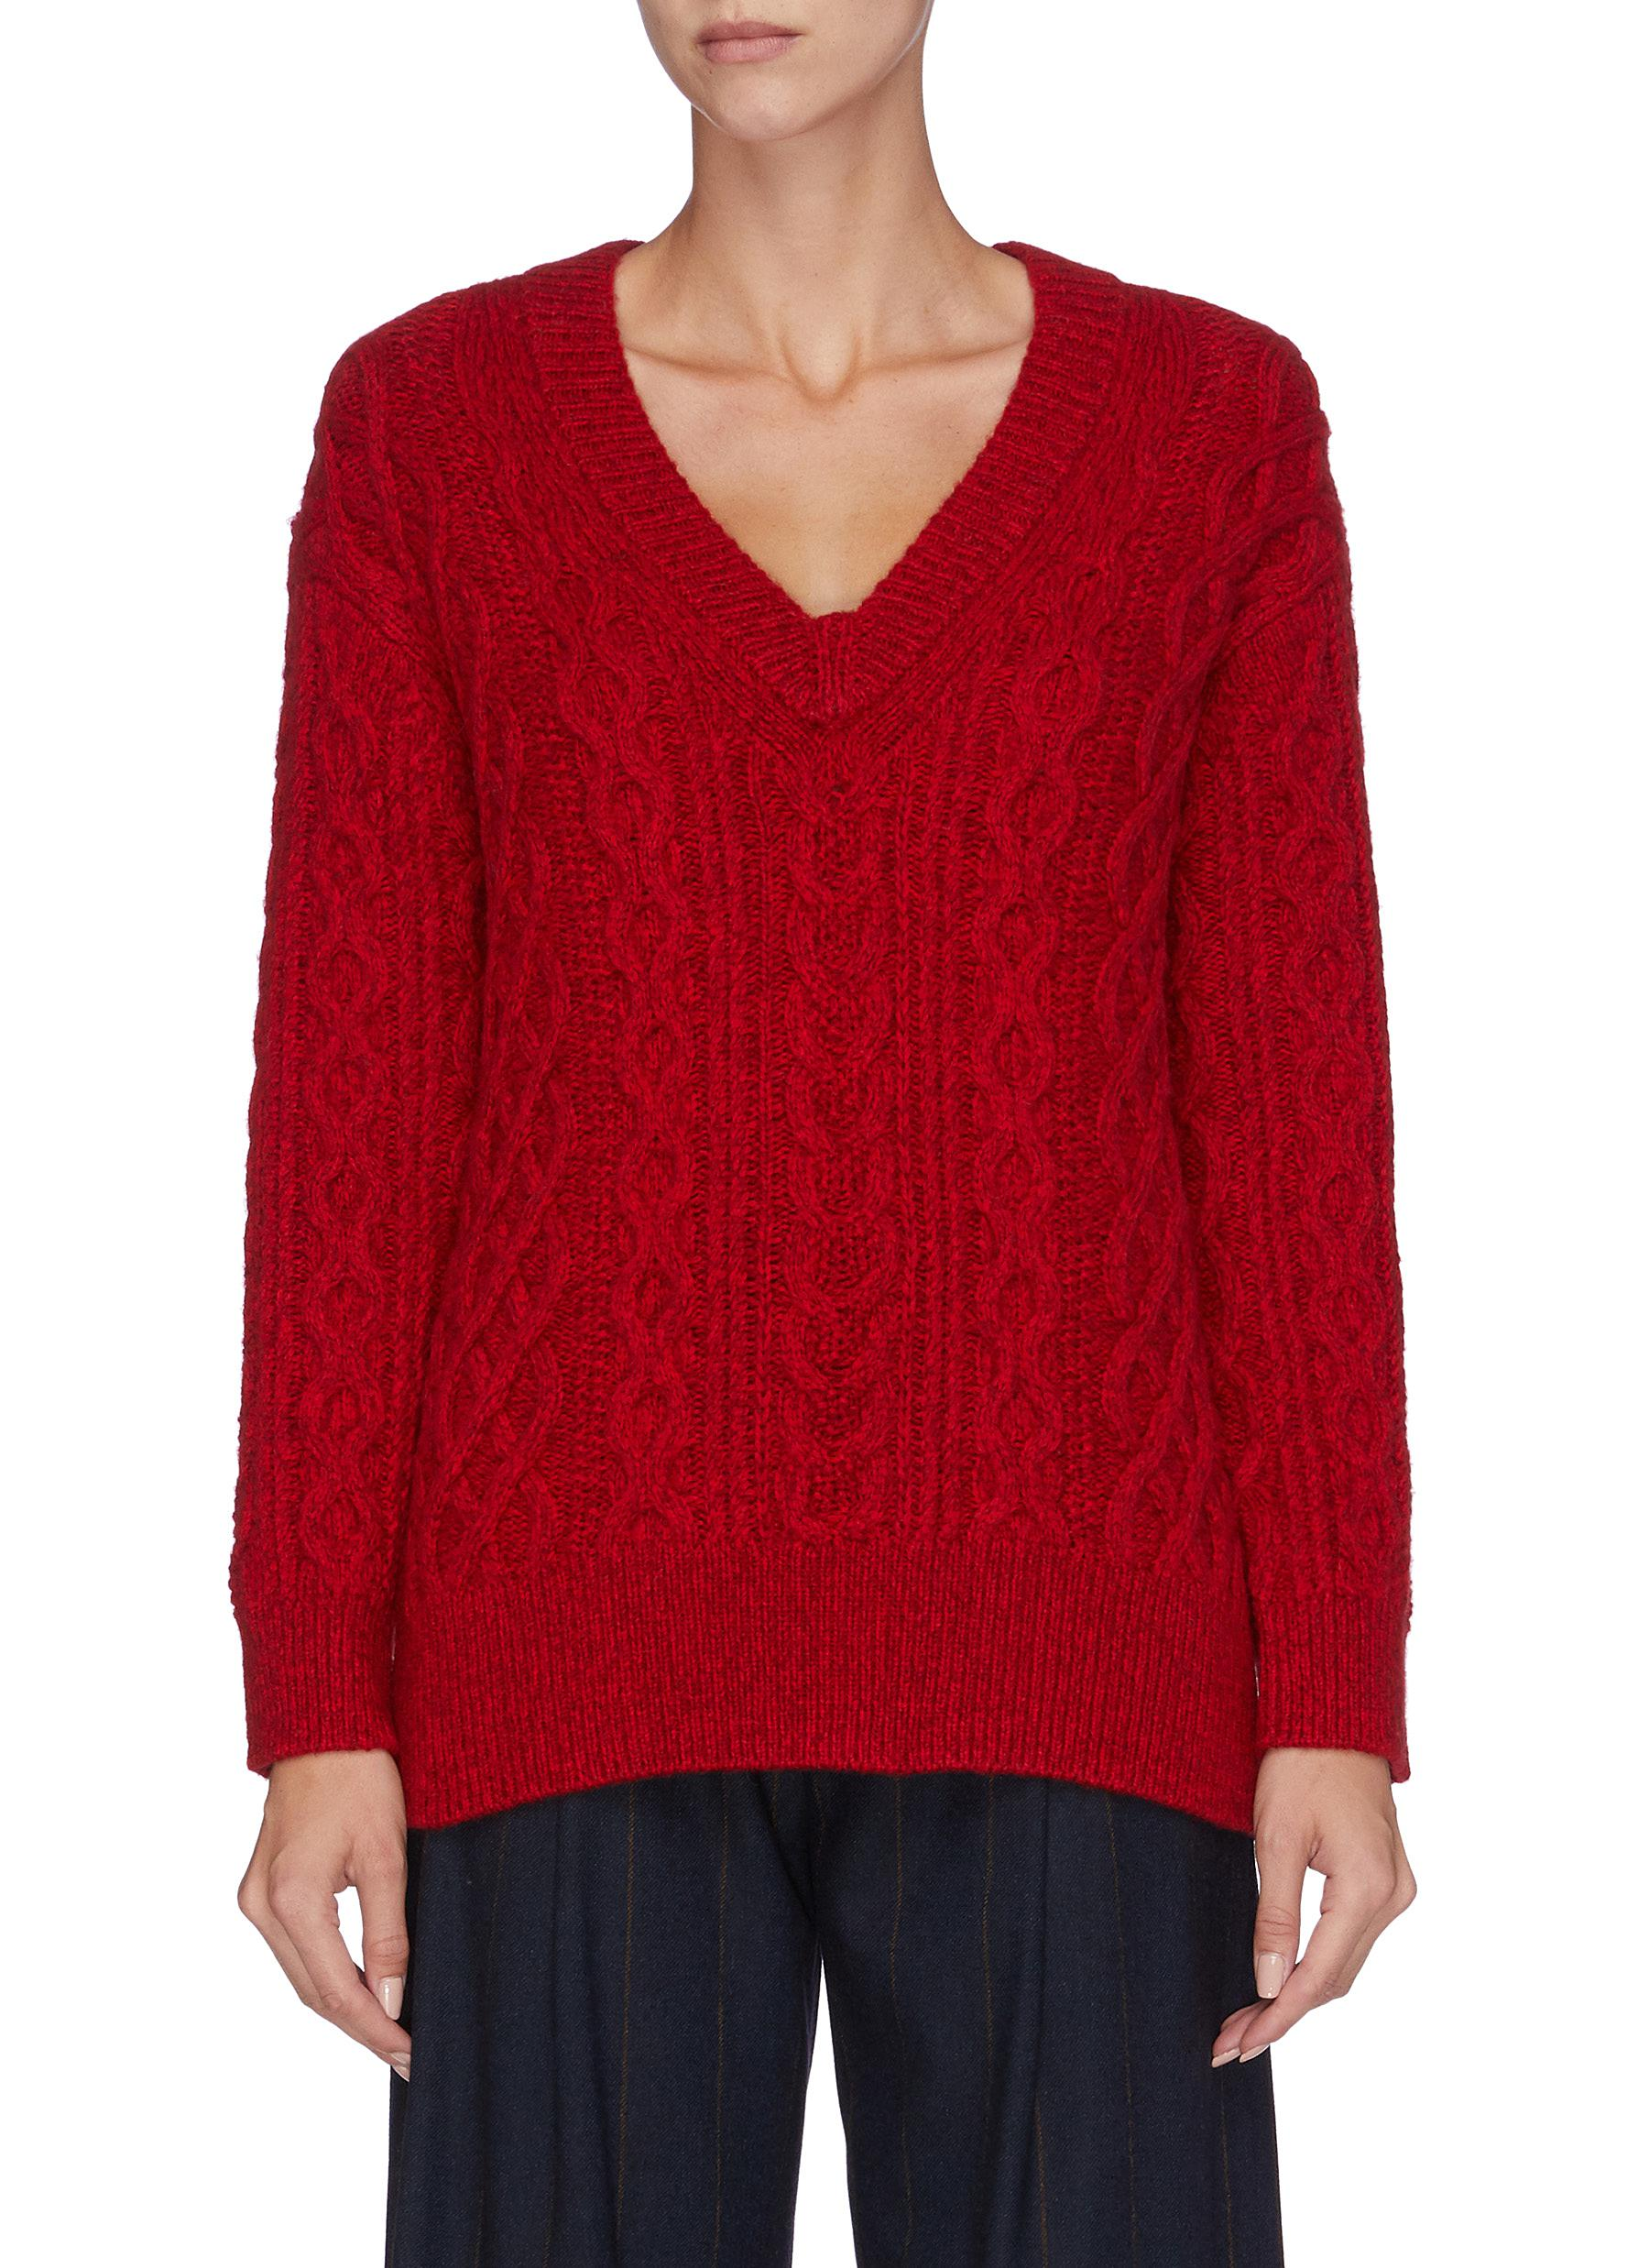 V neck Merino wool blend cable knit sweater by Vince